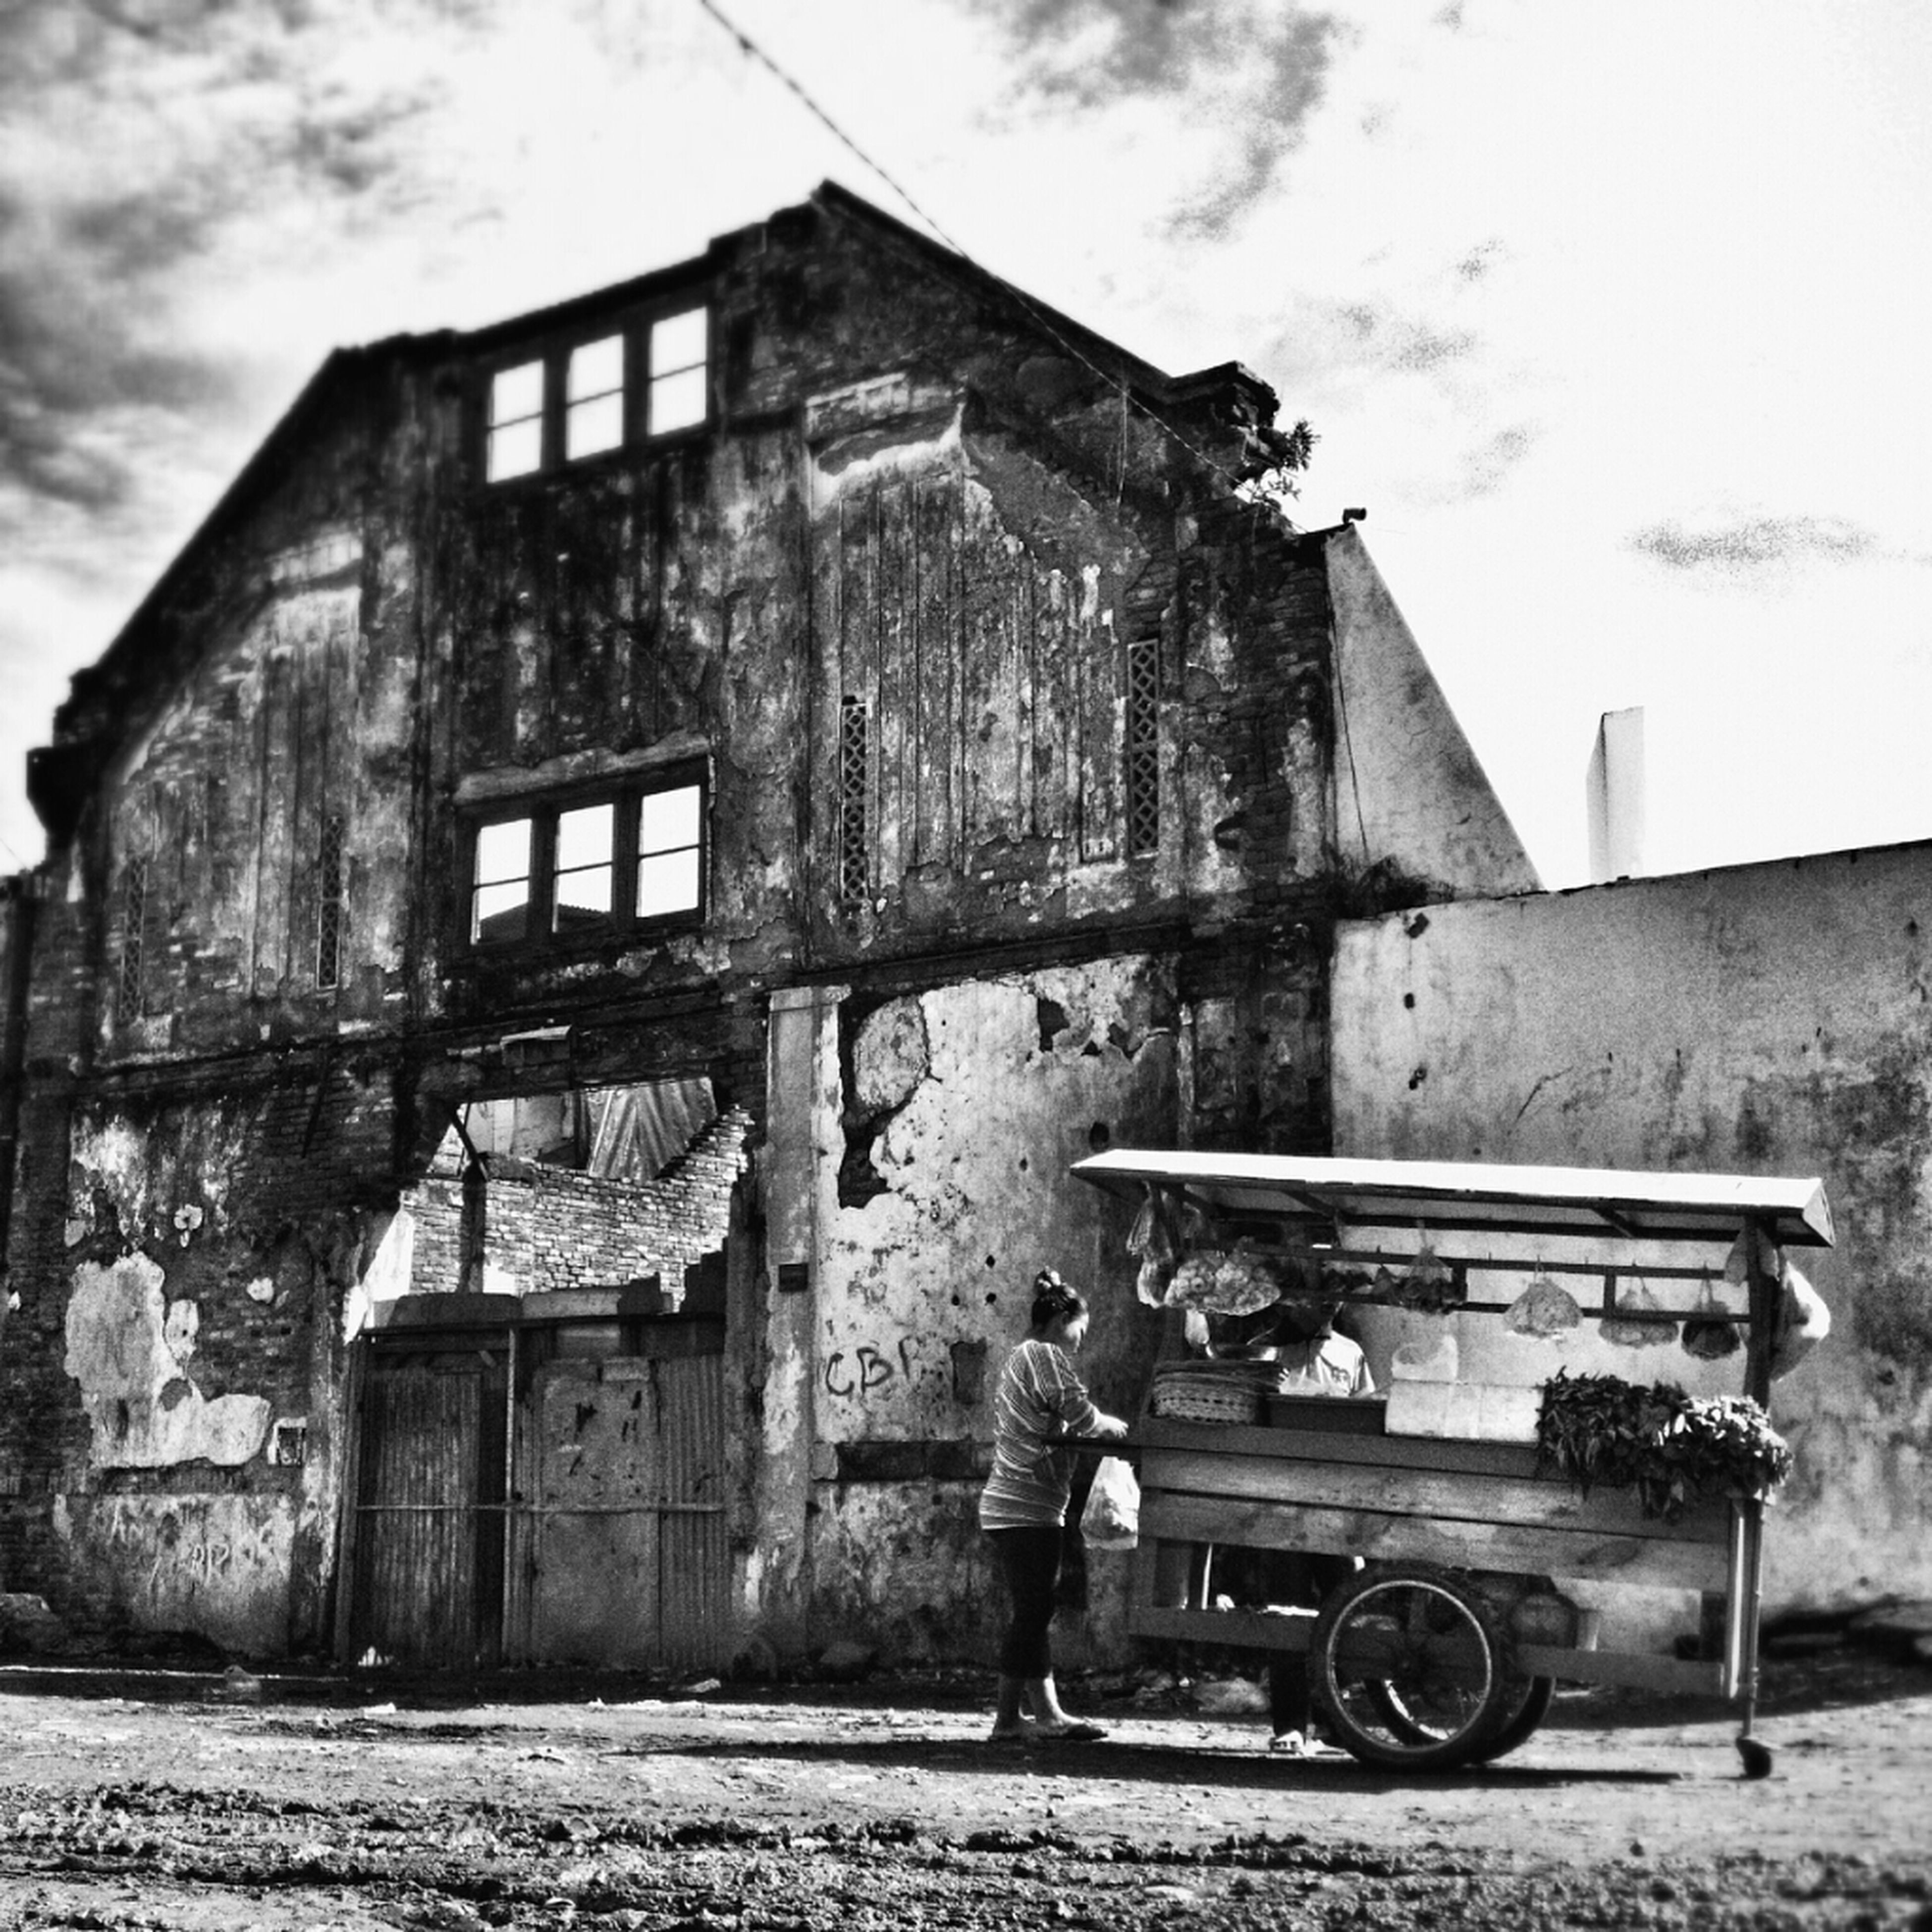 building exterior, architecture, built structure, transportation, sky, abandoned, mode of transport, old, land vehicle, obsolete, house, damaged, deterioration, weathered, run-down, cloud - sky, residential structure, cloud, outdoors, day